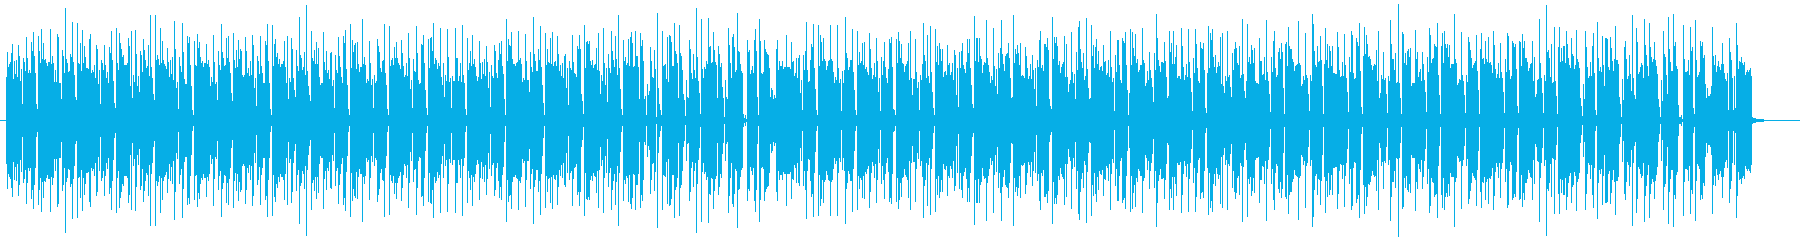 Light syntheline music's reproduced waveform